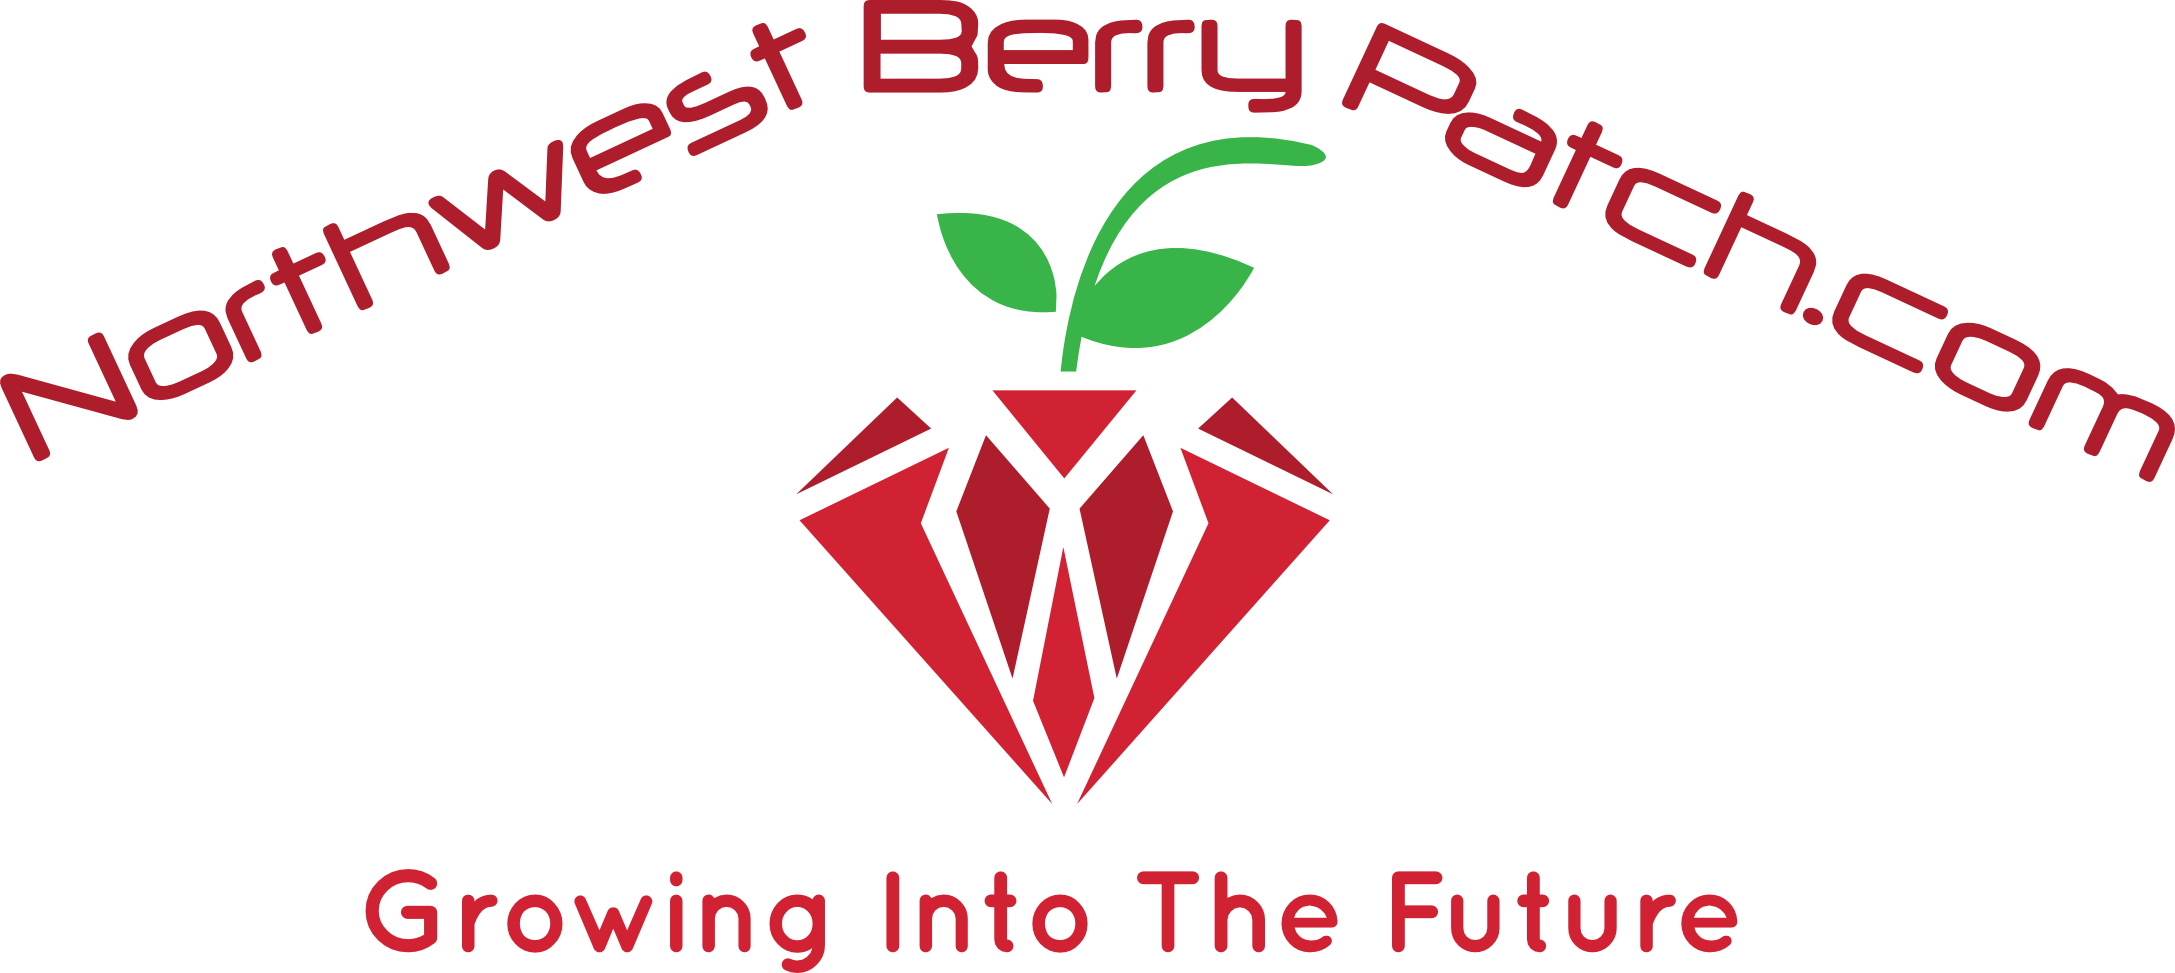 NW Berry Patch